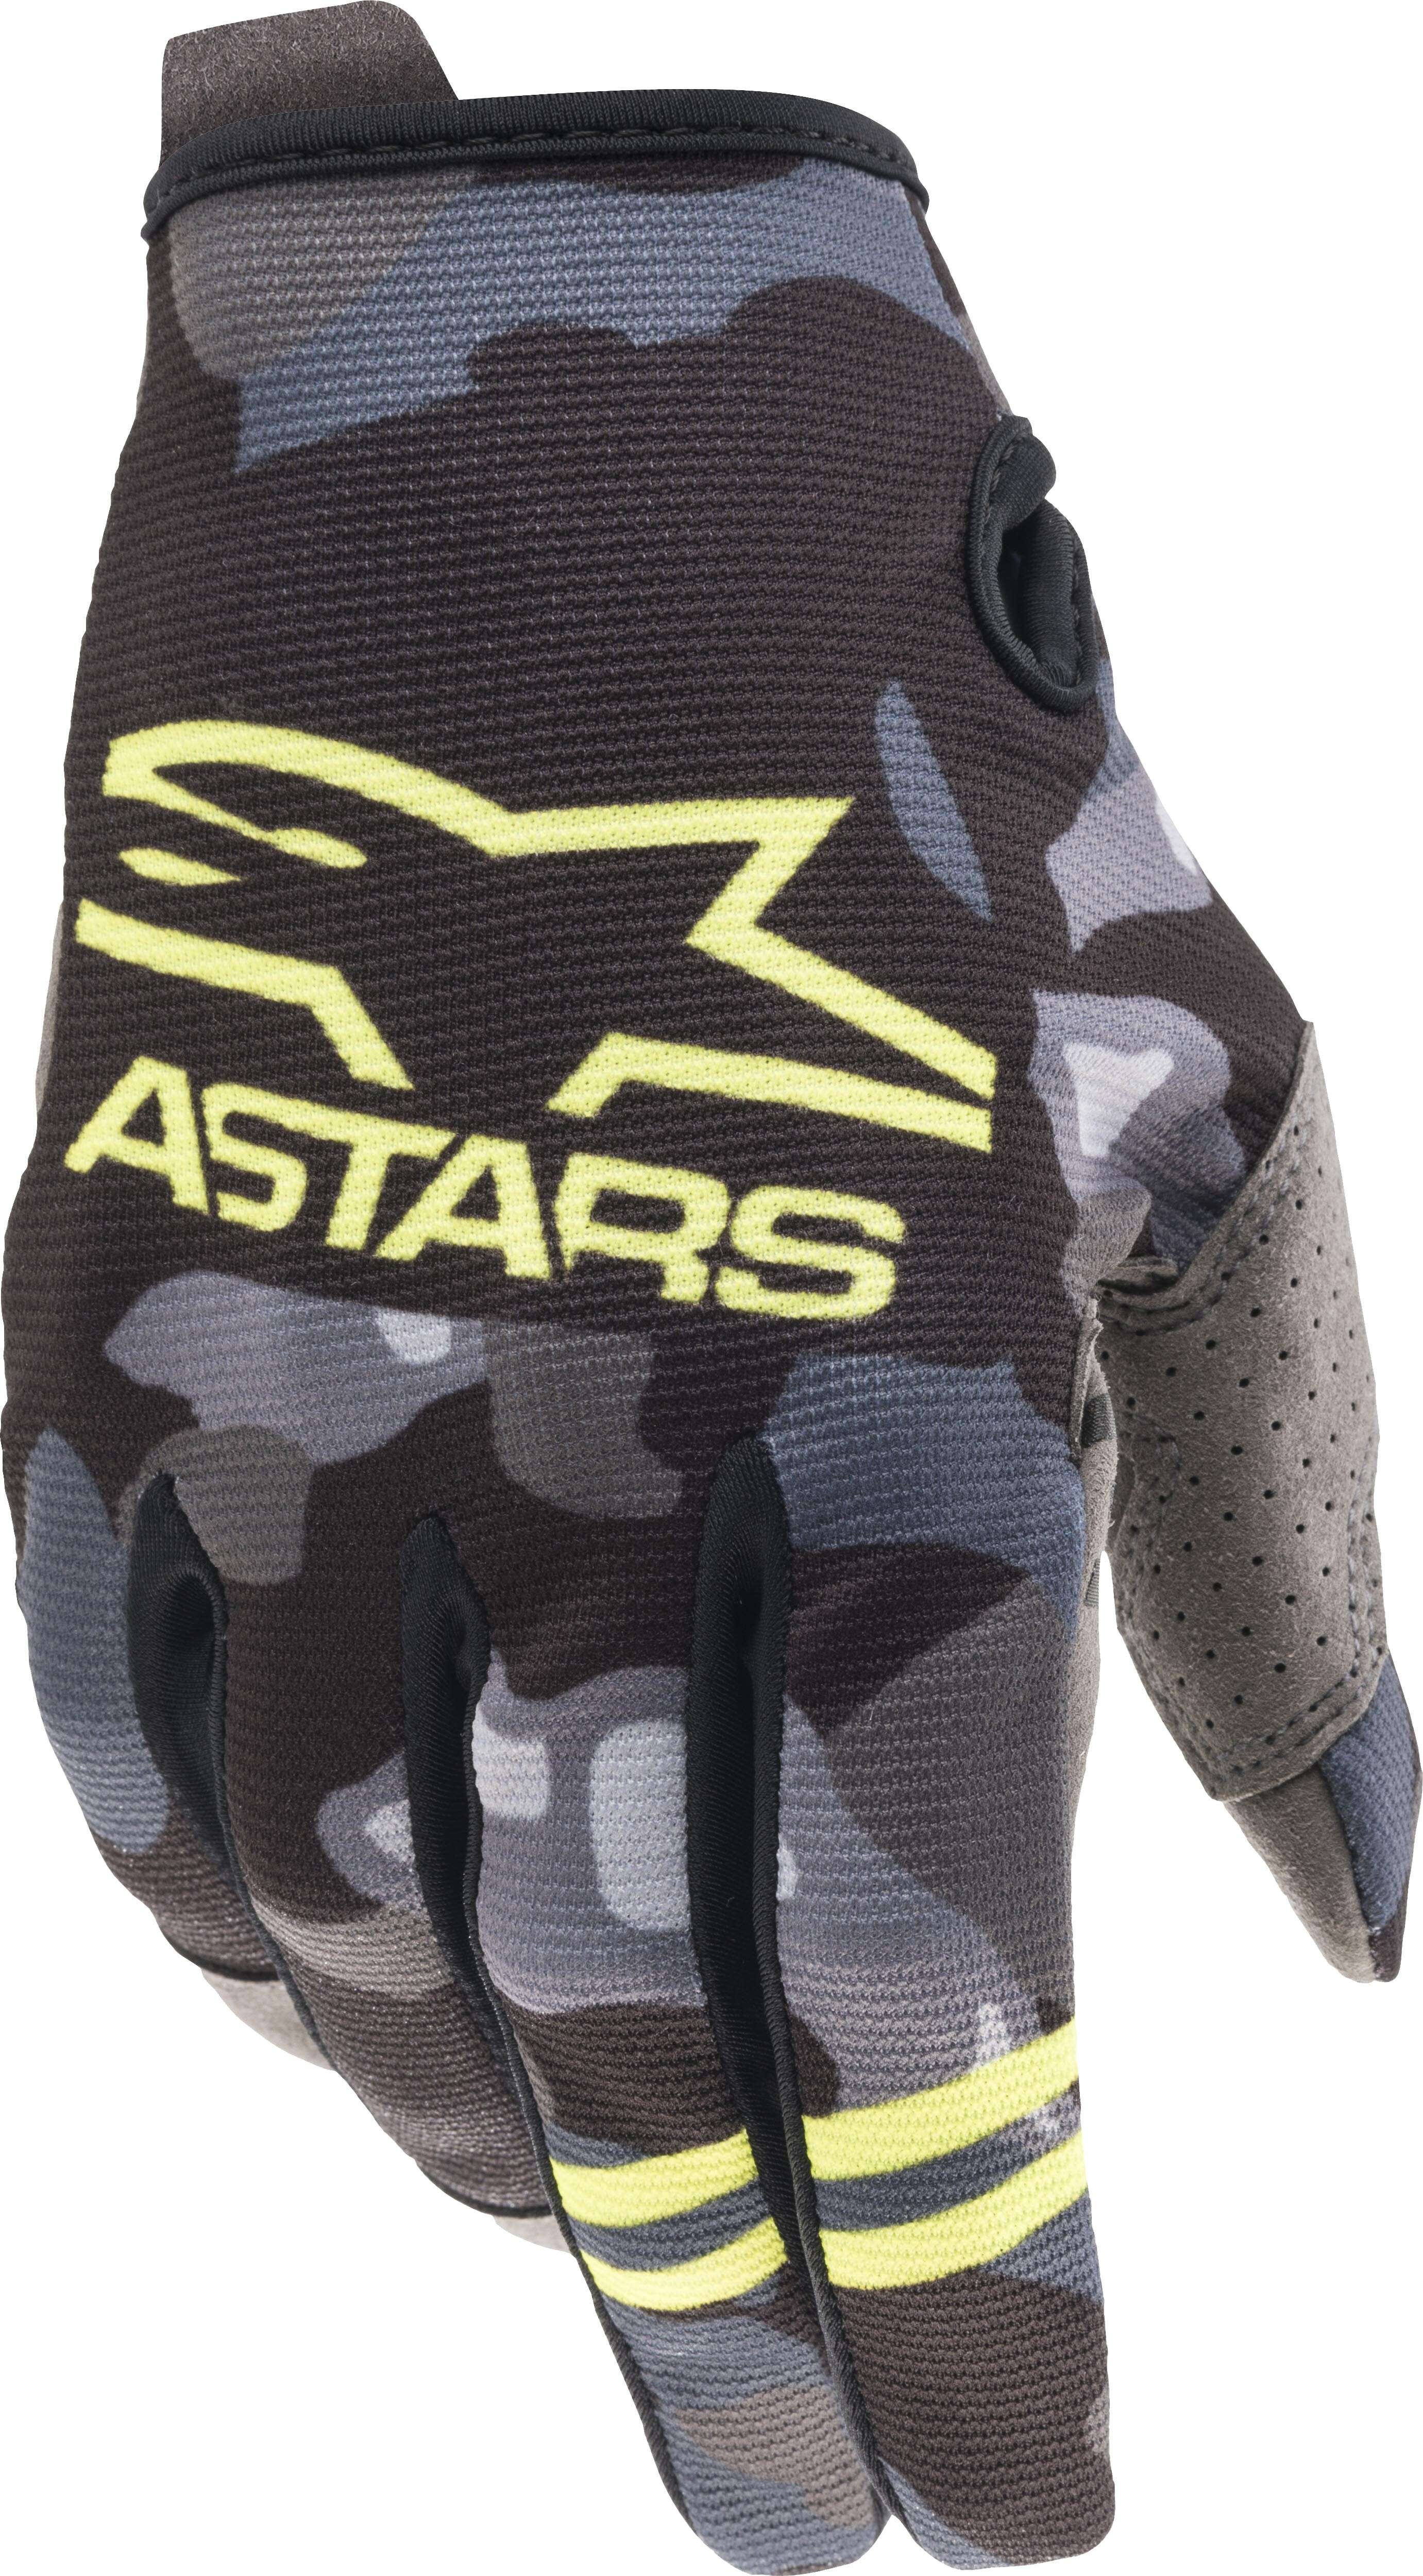 YOUTH RADAR GLOVES GREY CAMO/ YELLOW FLUO LG